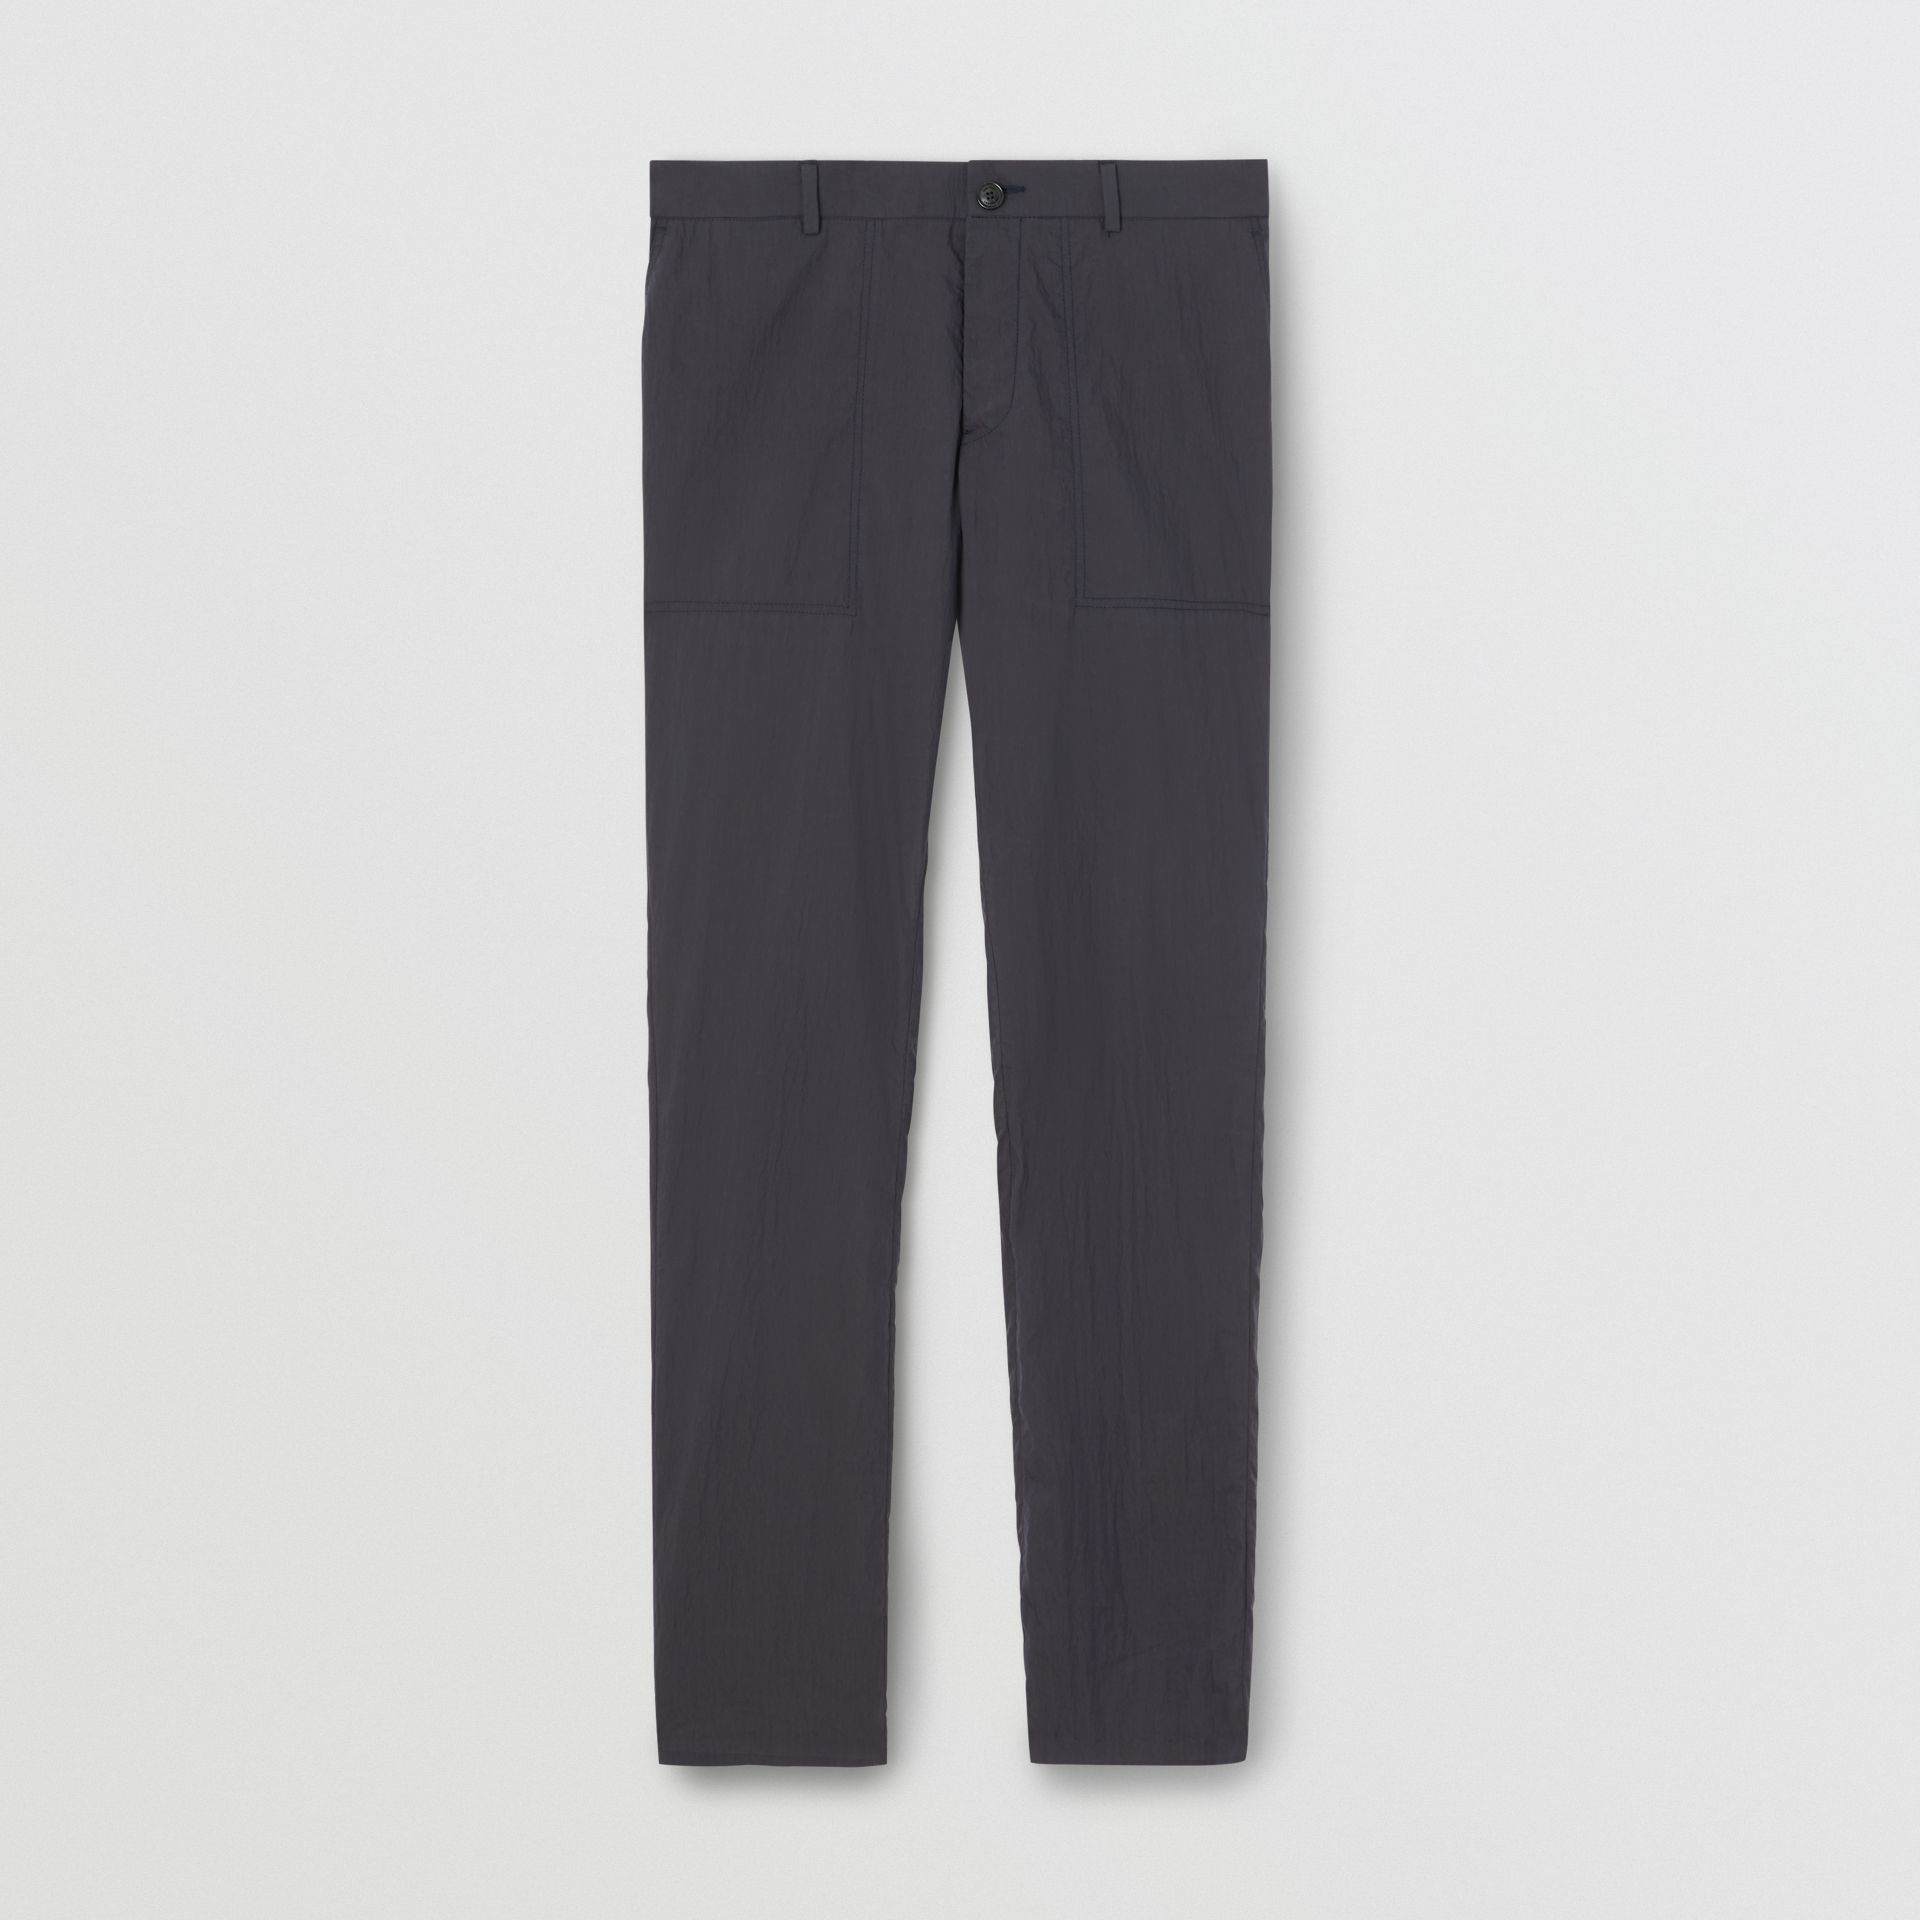 Classic Fit Cotton Blend Tailored Trousers in Navy - Men | Burberry Canada - gallery image 3